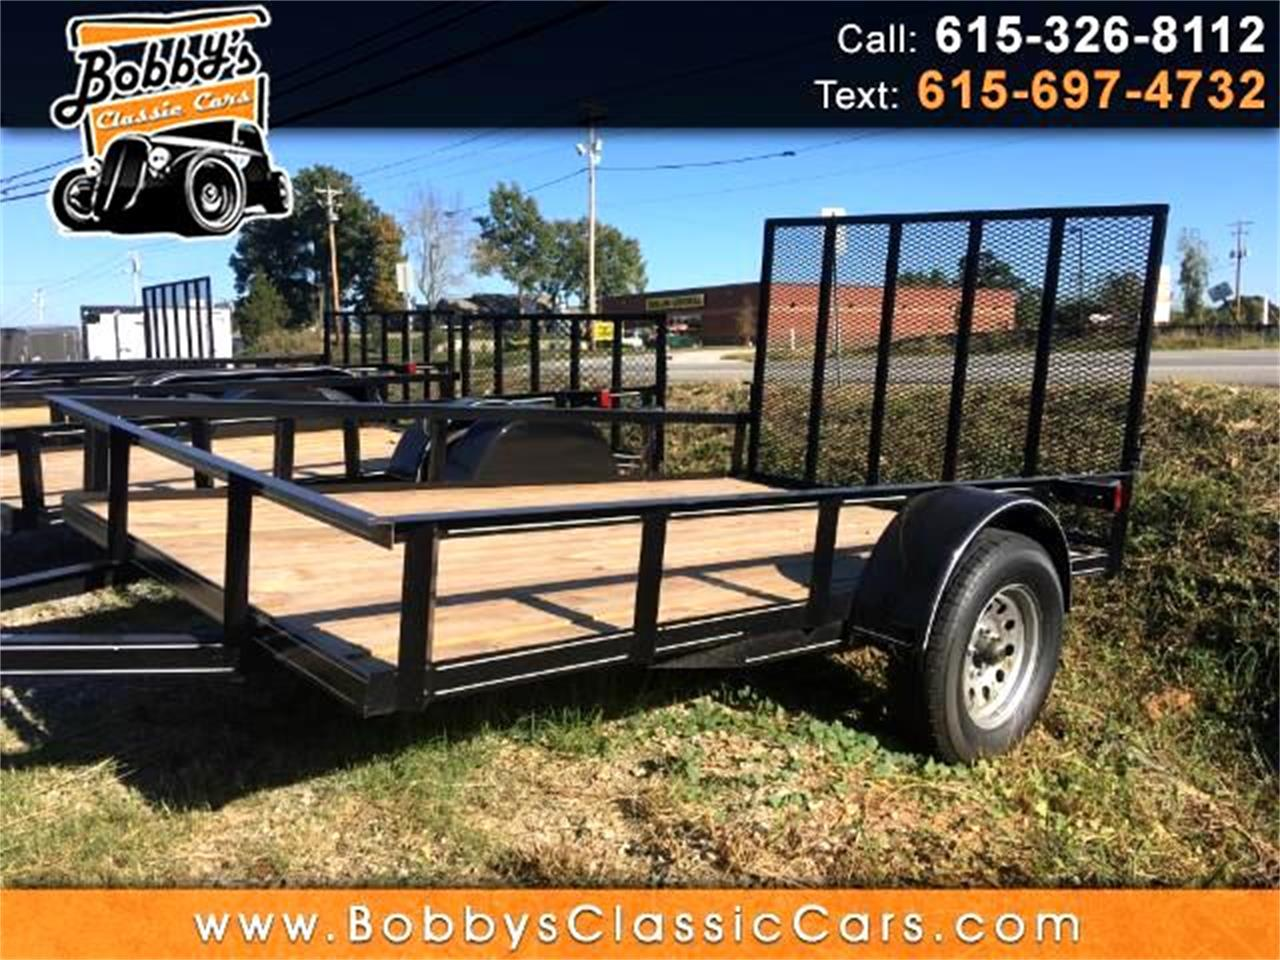 2020 Miscellaneous Trailer (CC-1352097) for sale in Dickson, Tennessee